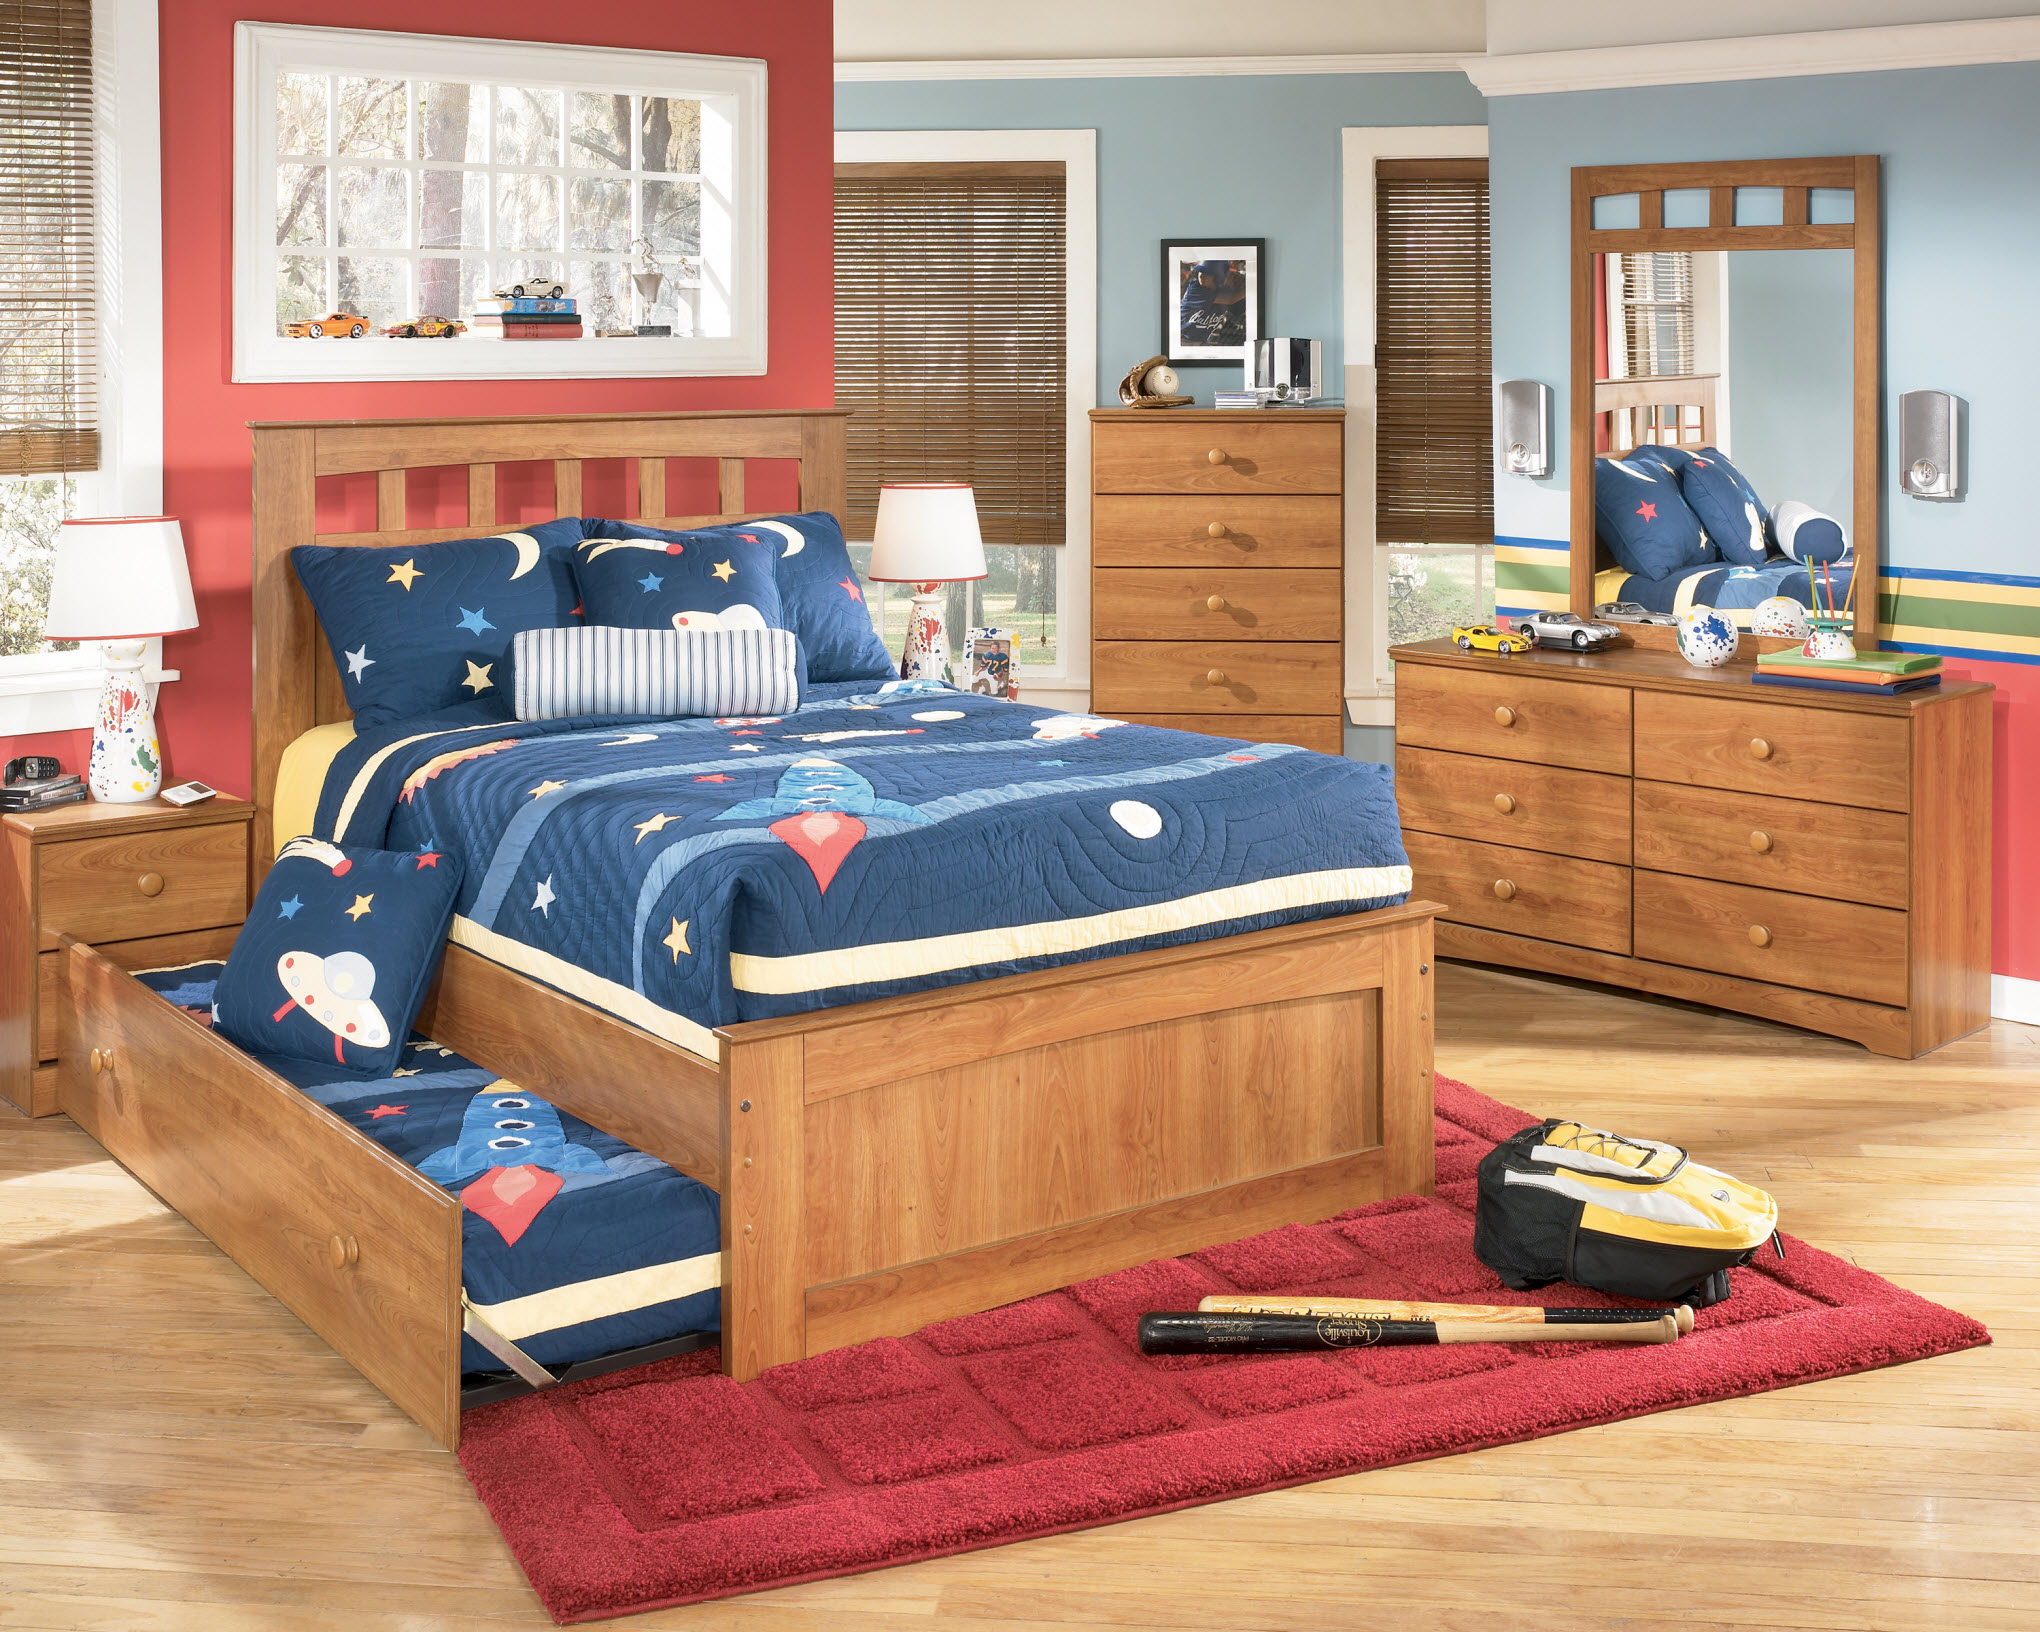 Boys bedroom sets: the great gift for your young boy